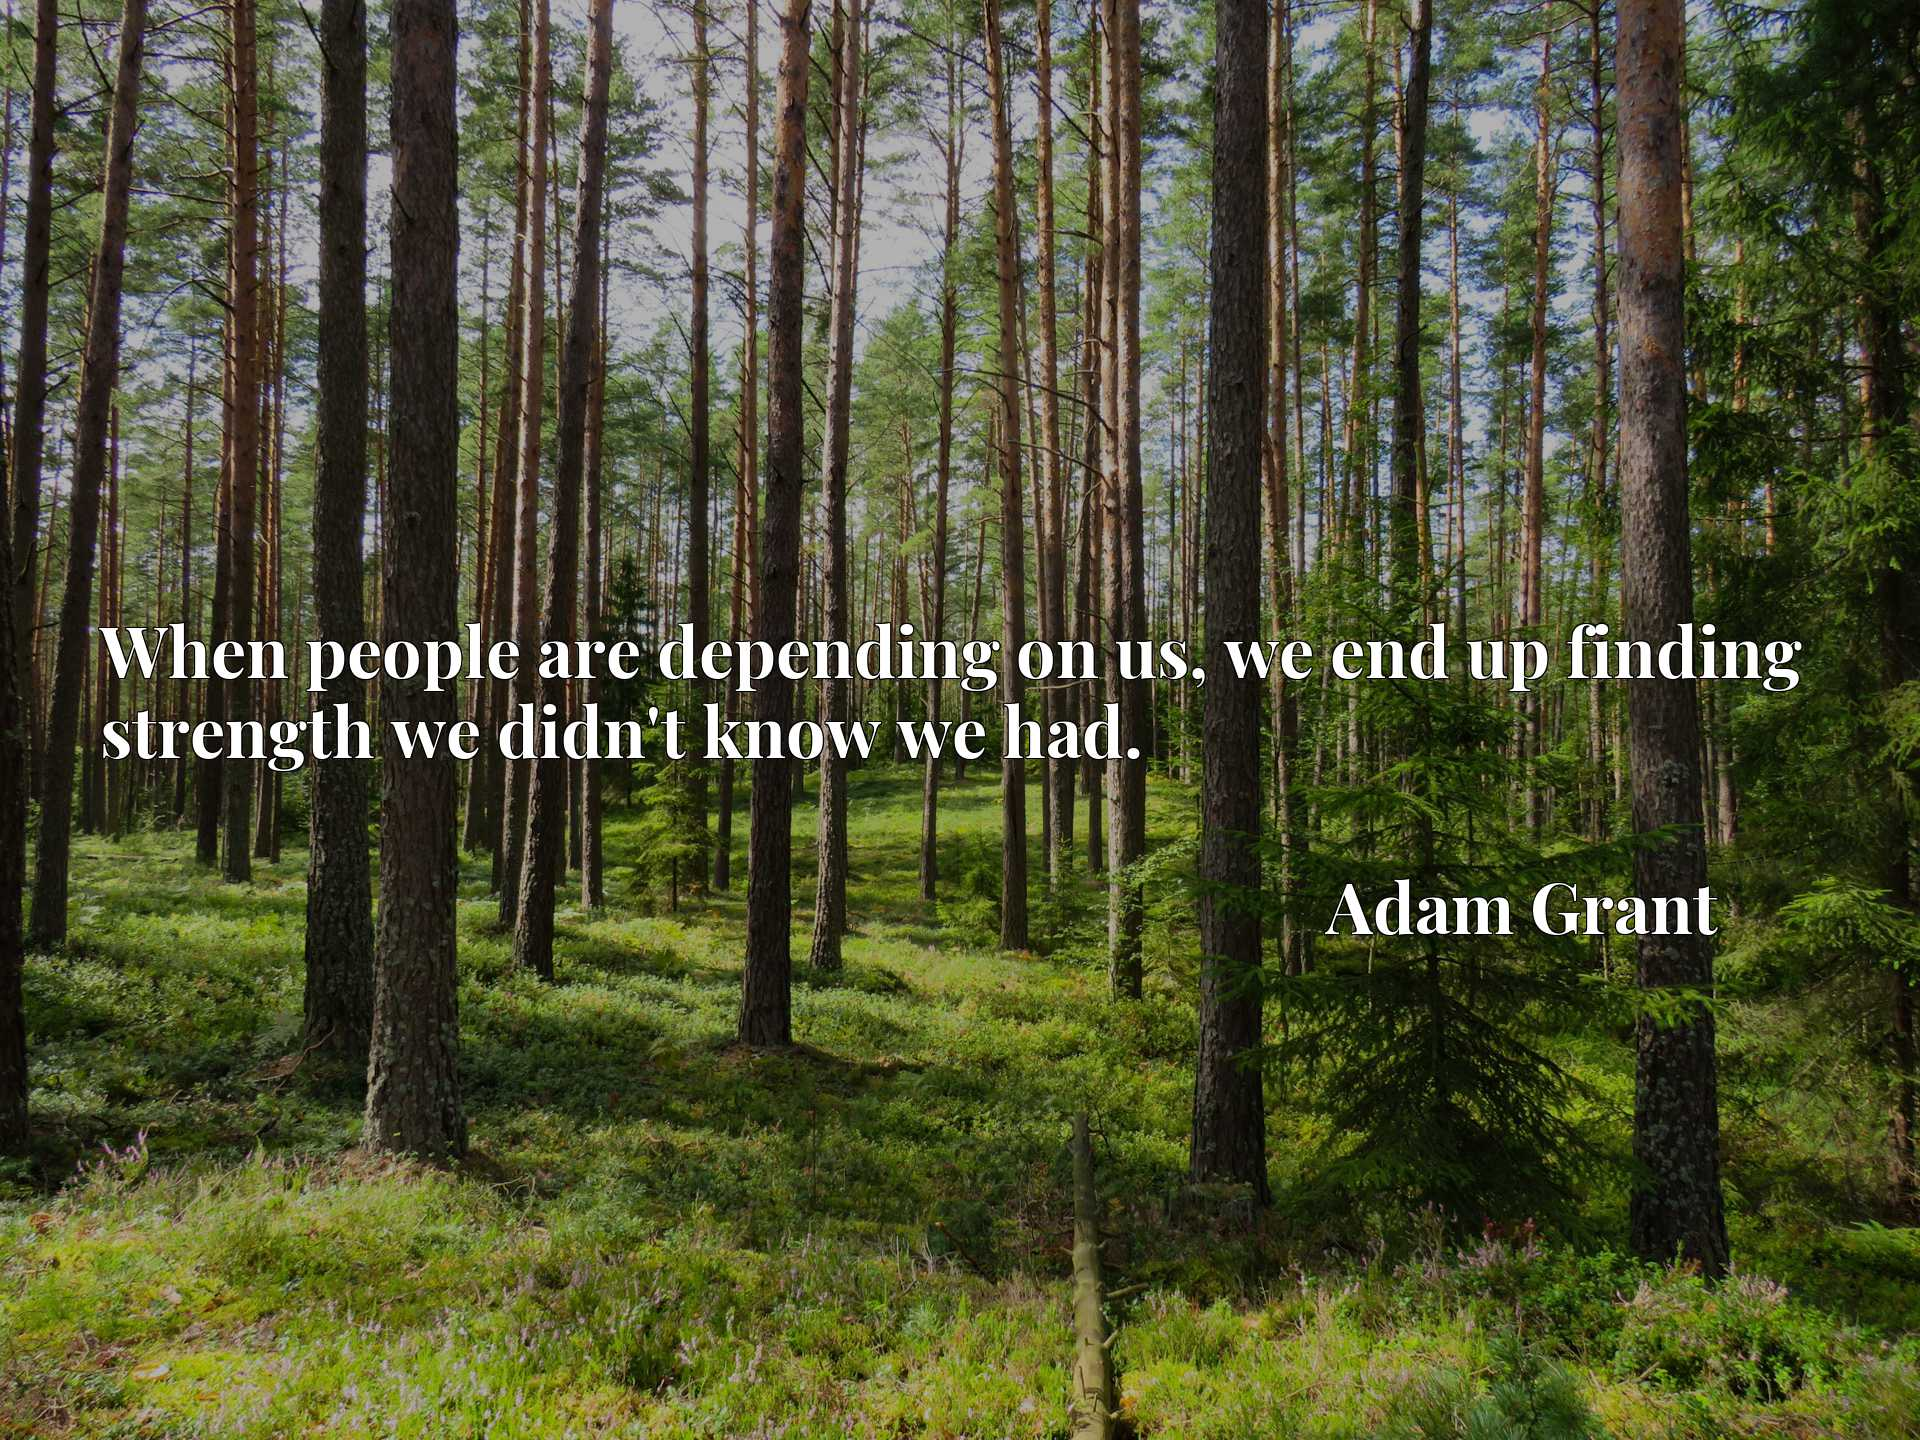 Quote Picture :When people are depending on us, we end up finding strength we didn't know we had.